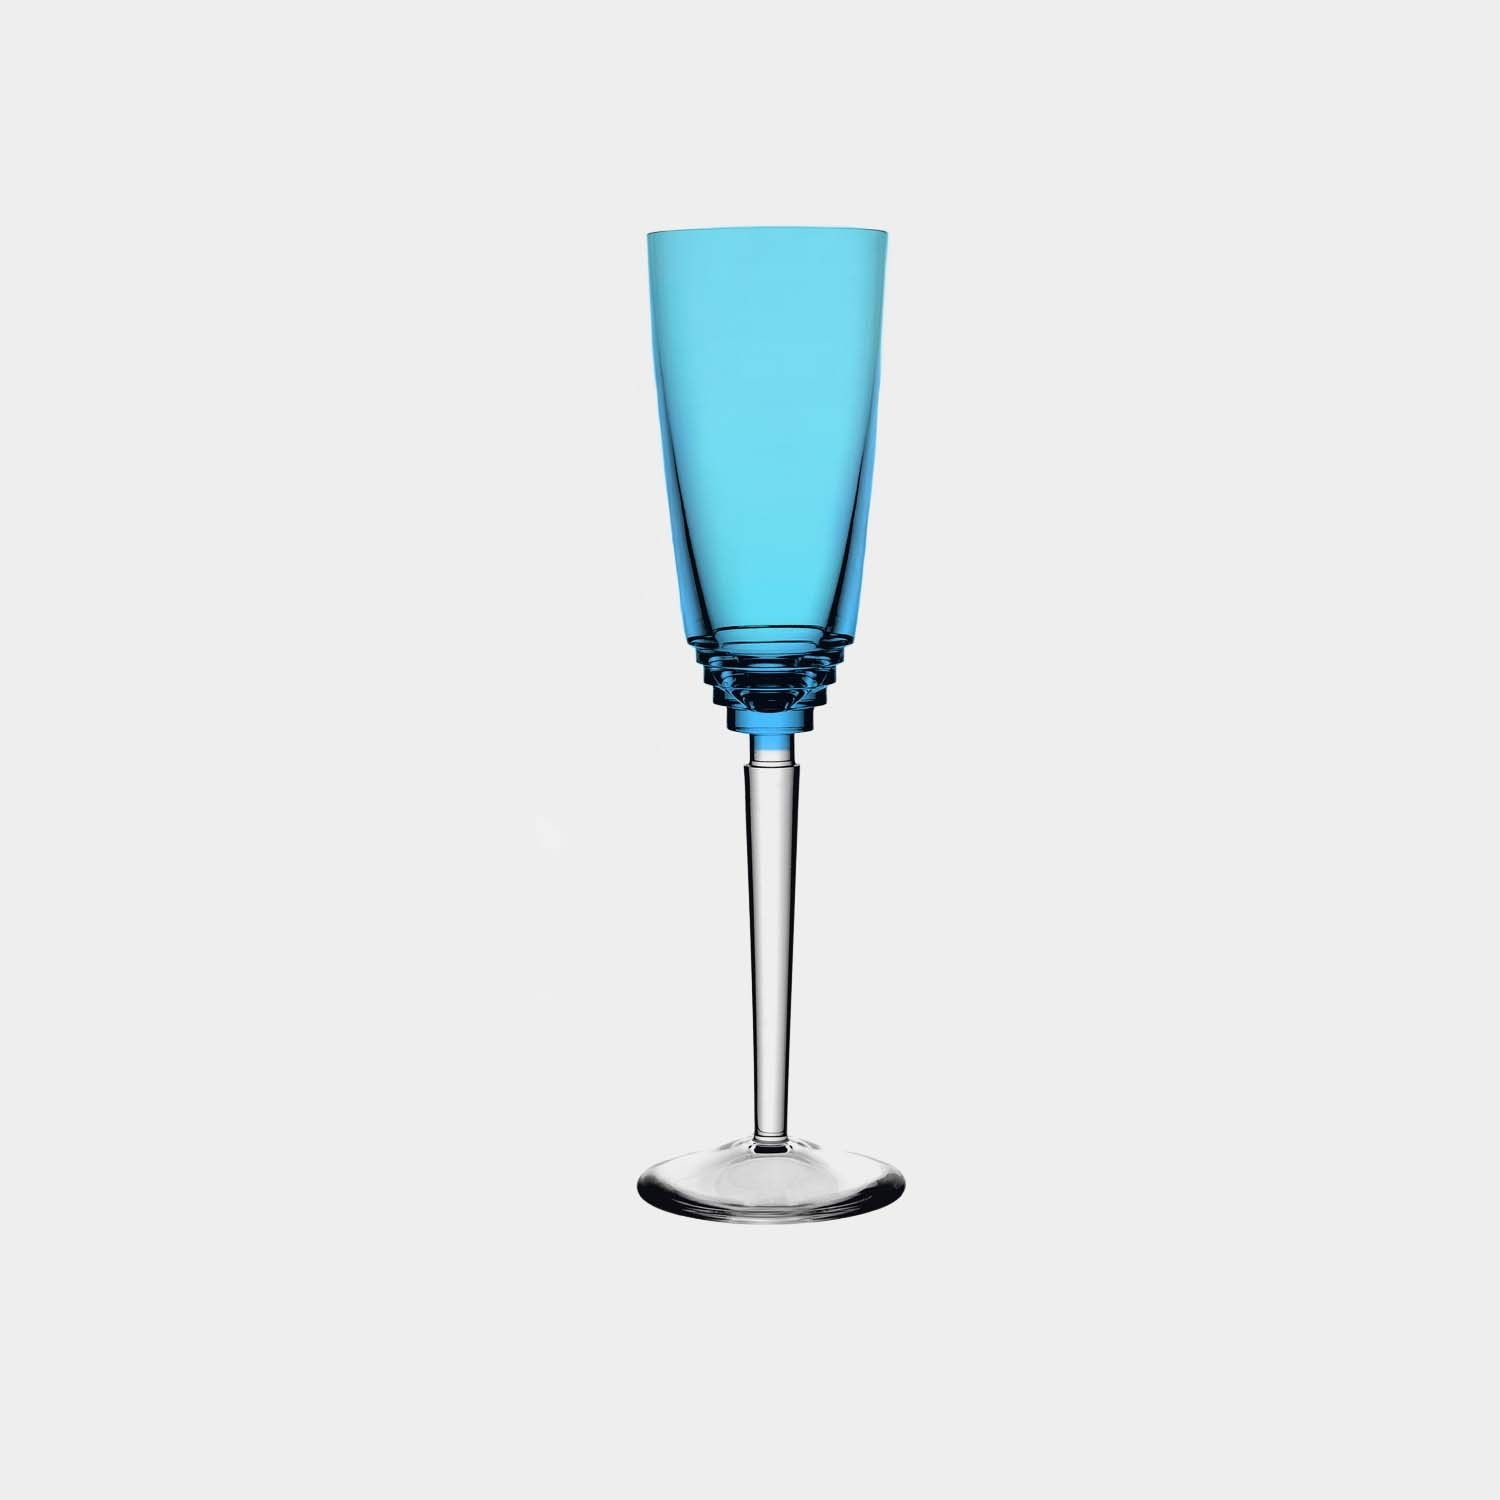 Oxymore Champagne Flute, Sky Blue